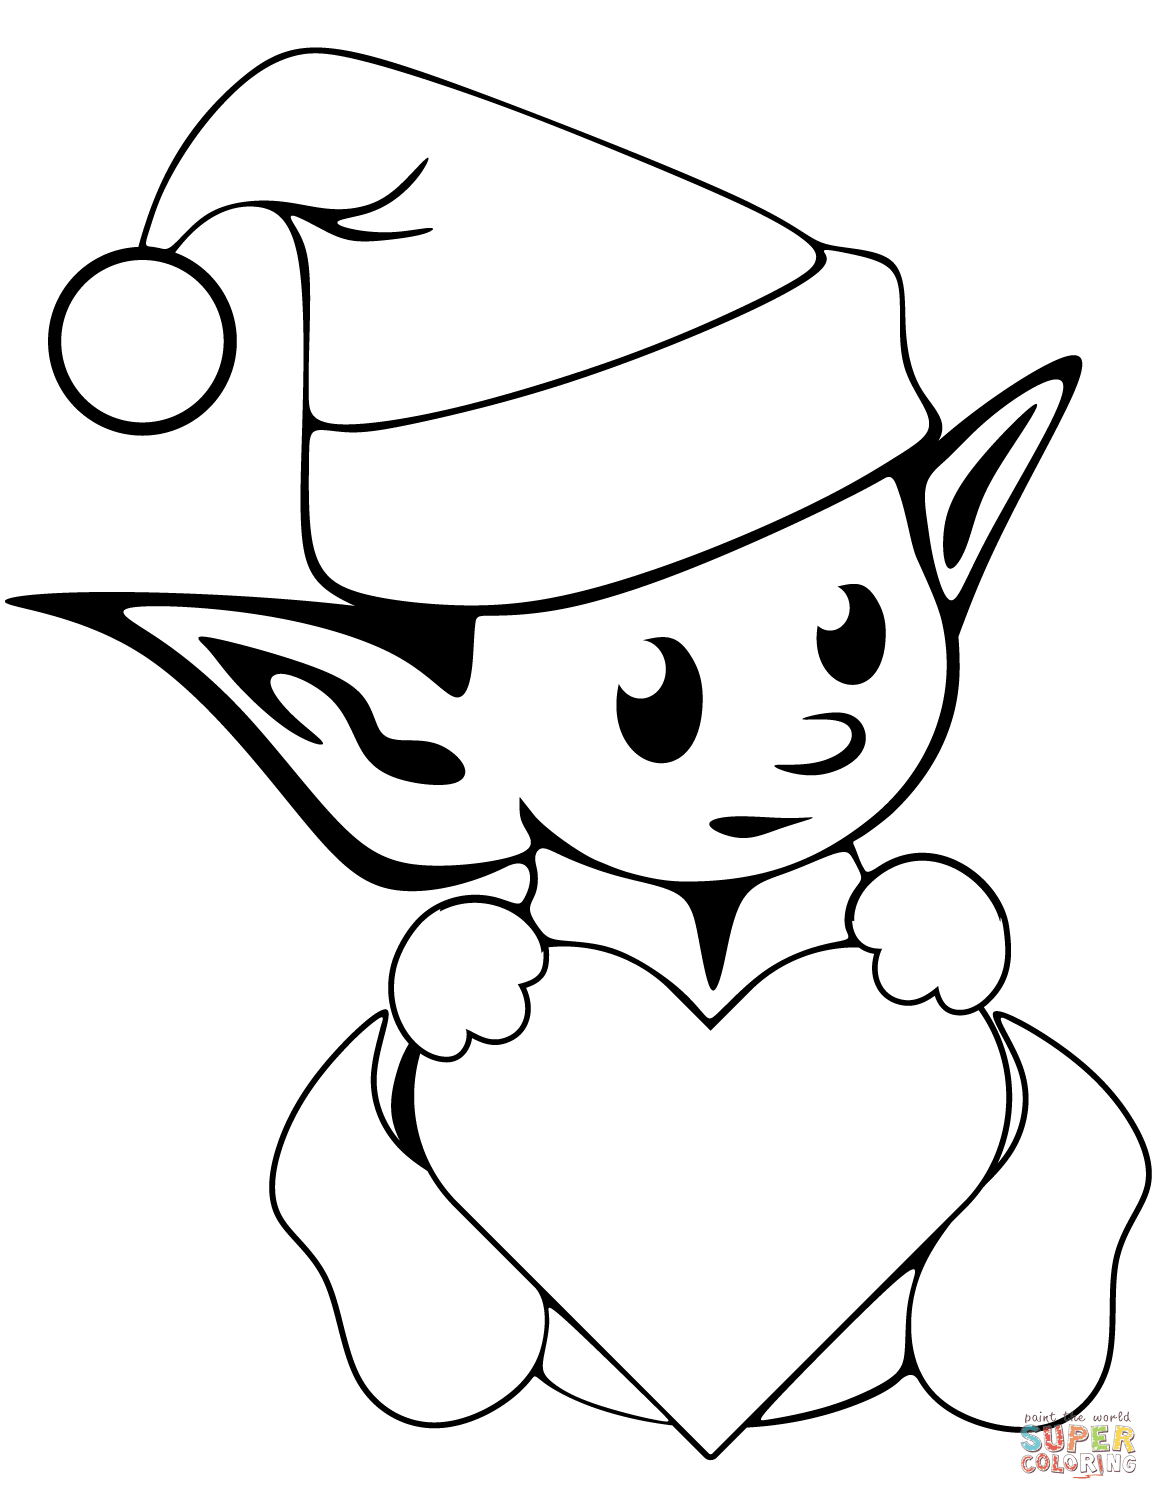 Santa S Elves Coloring Pages With Christmas 2021241